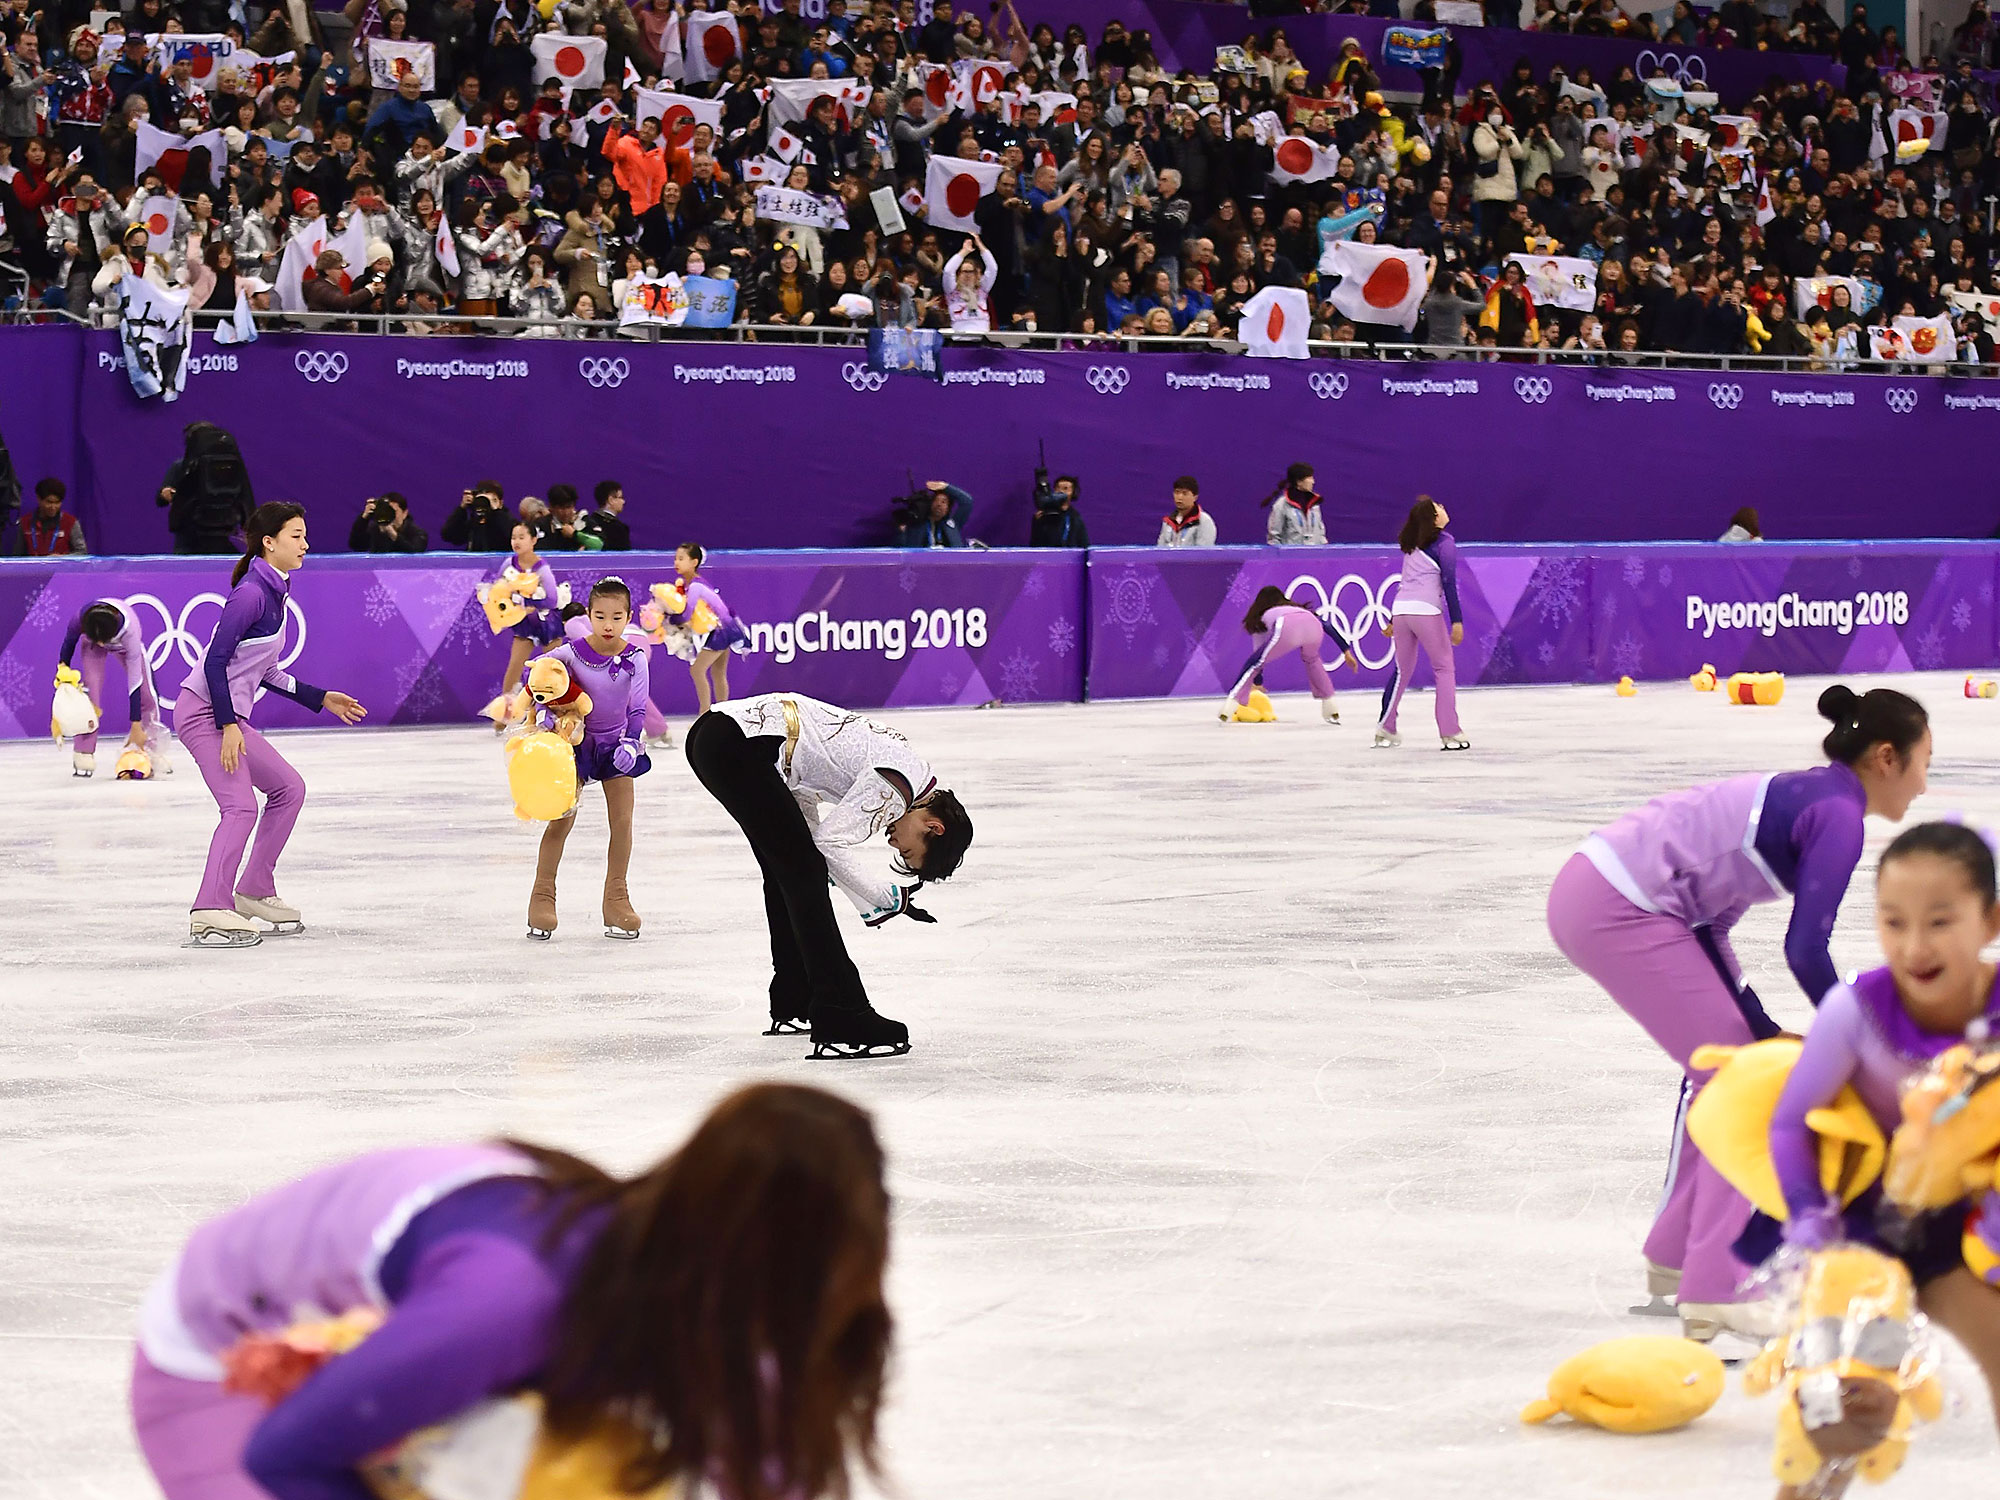 Yuzuru Hanyu Wins Gold 2018 Winter Olympics